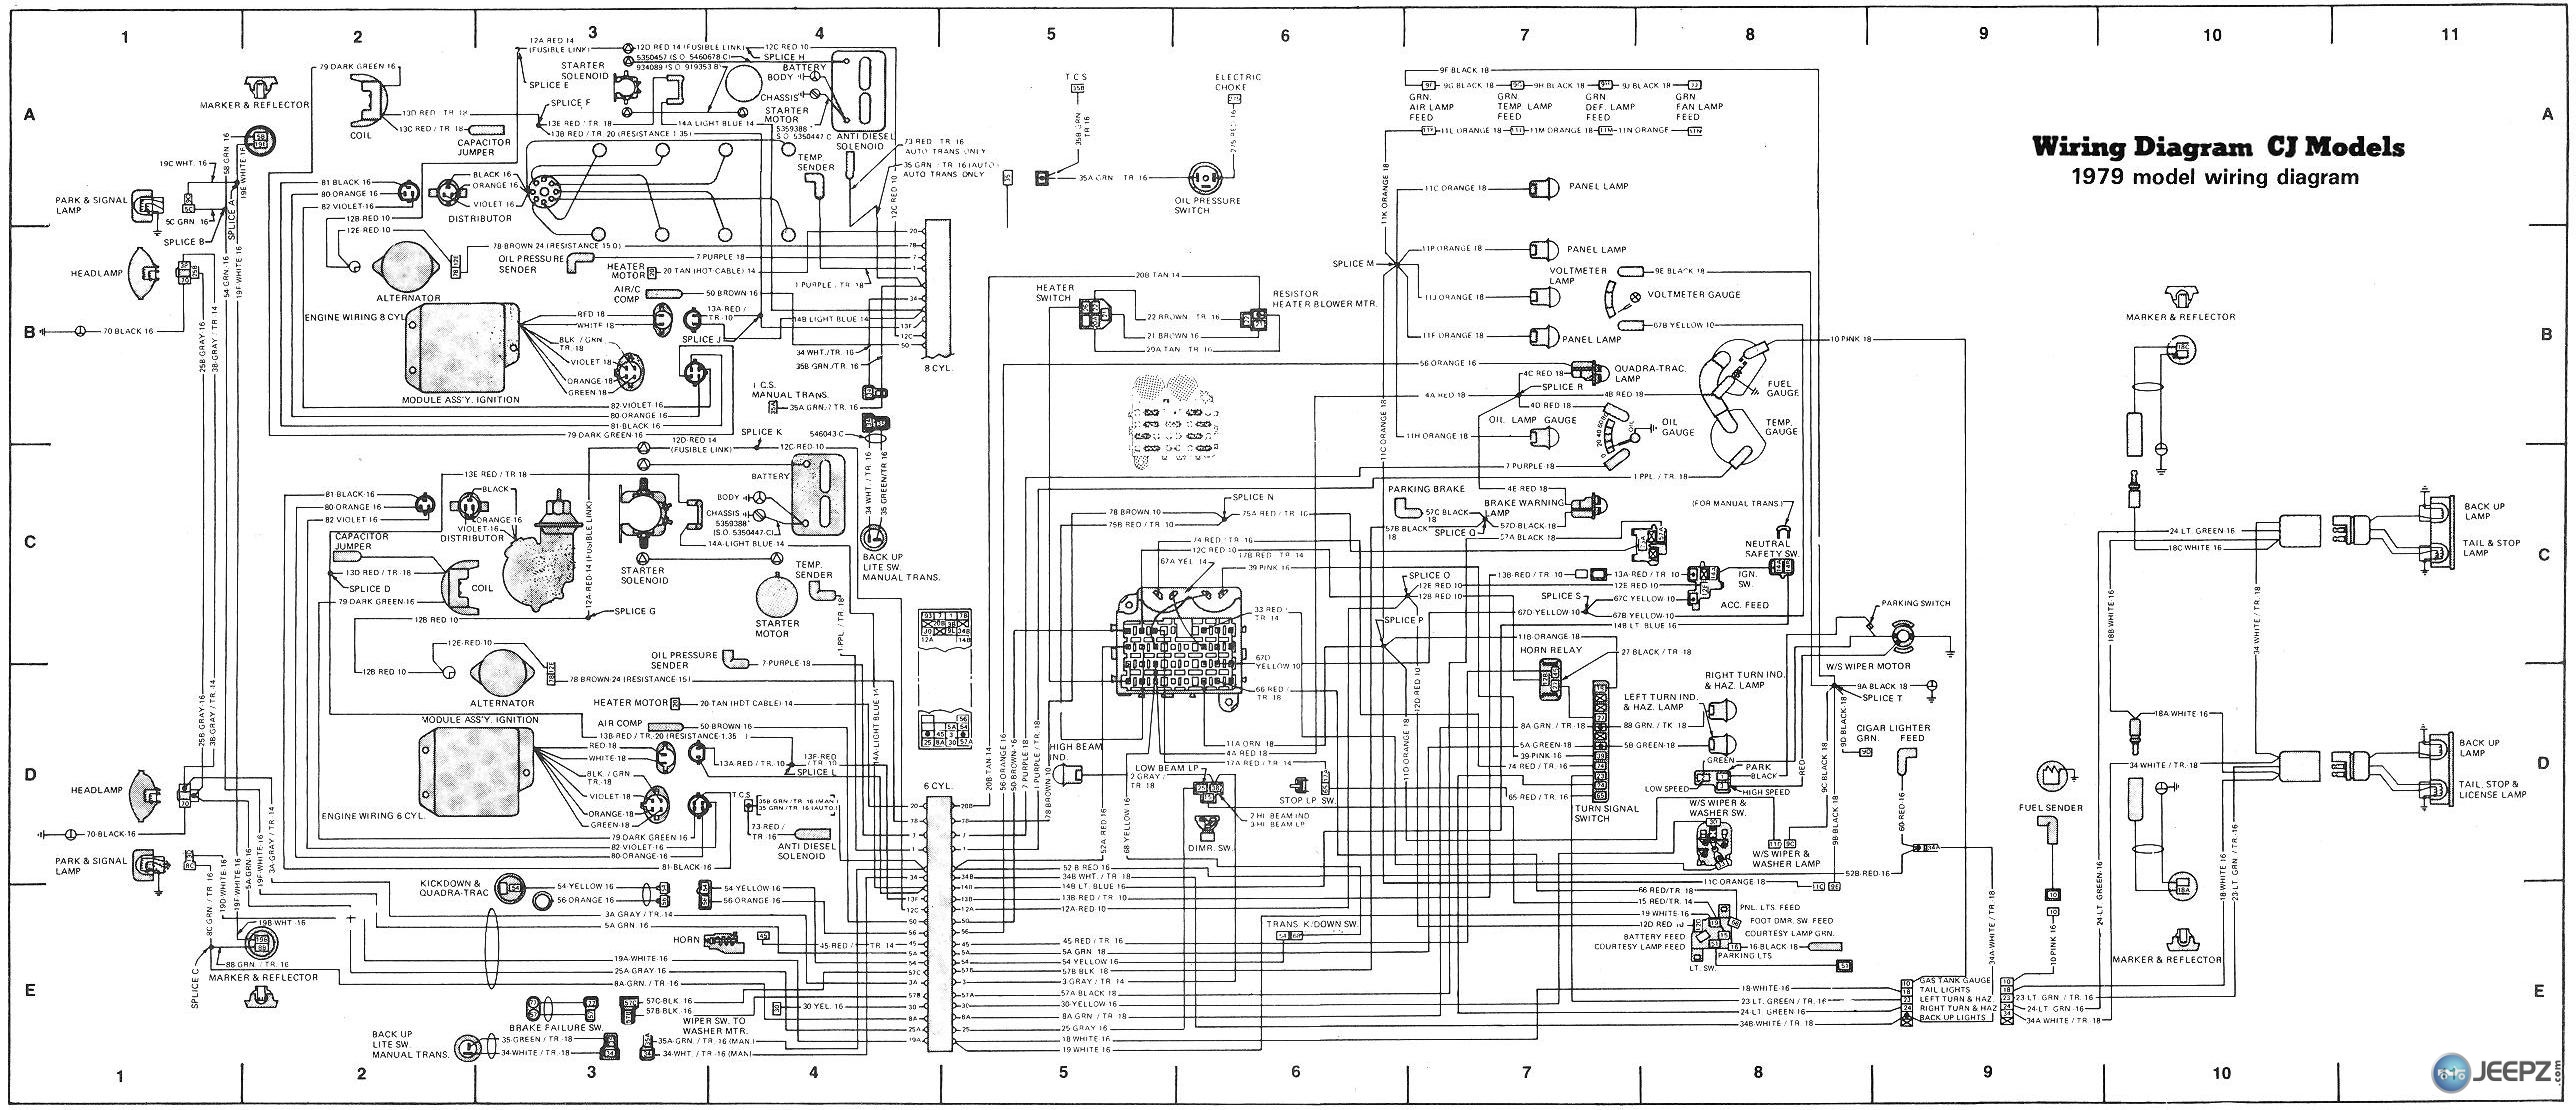 Astounding Wiring Diagram For Cj8 Blog Diagram Schema Wiring 101 Eattedownsetwise Assnl